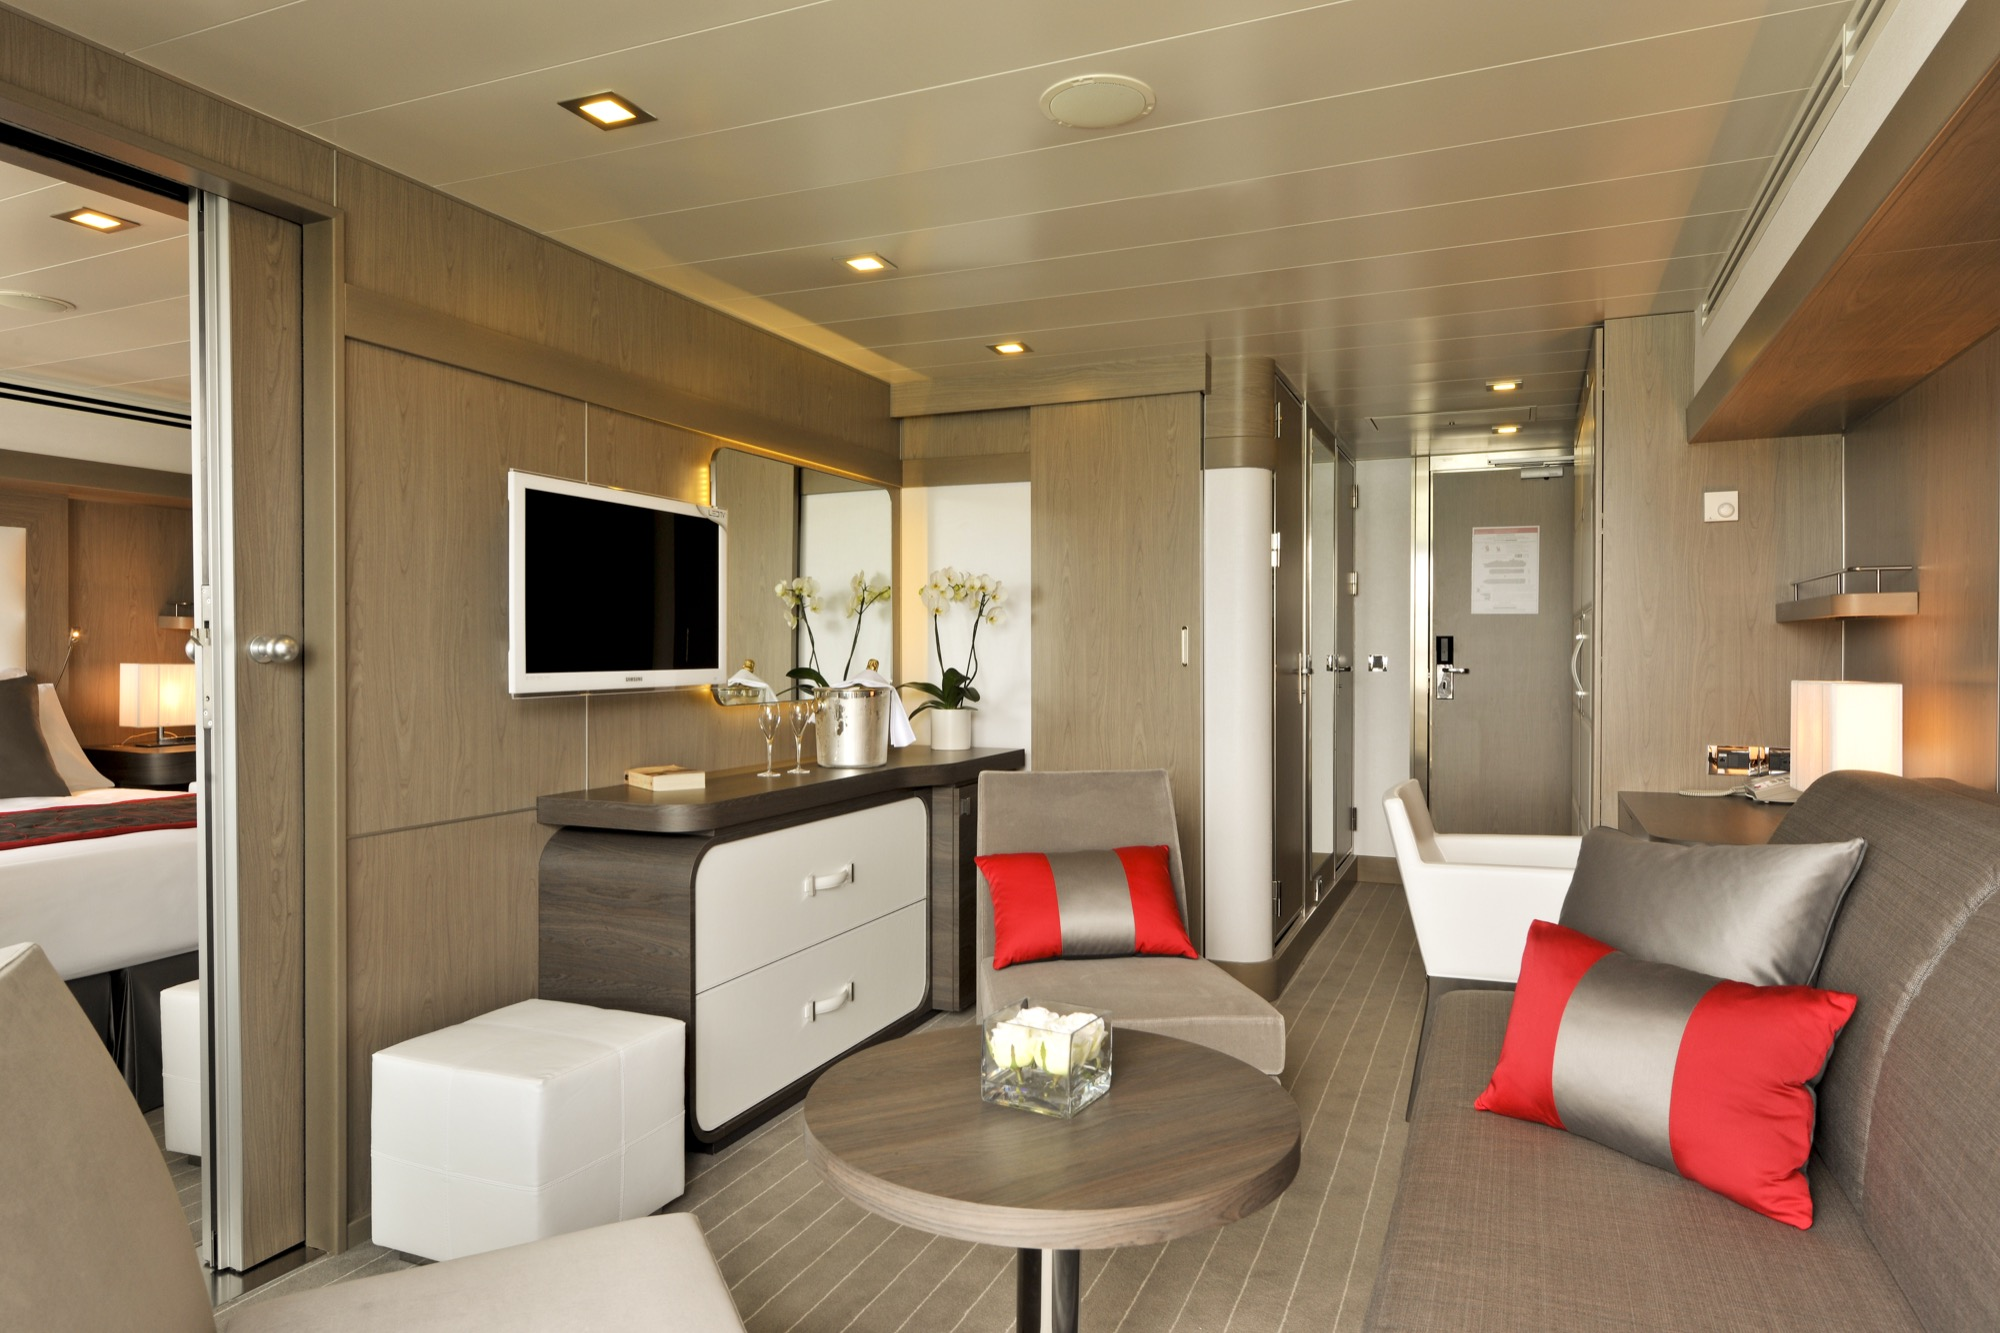 Ponant Le Boreal Accommodation Deluxe Suite 2.JPEG